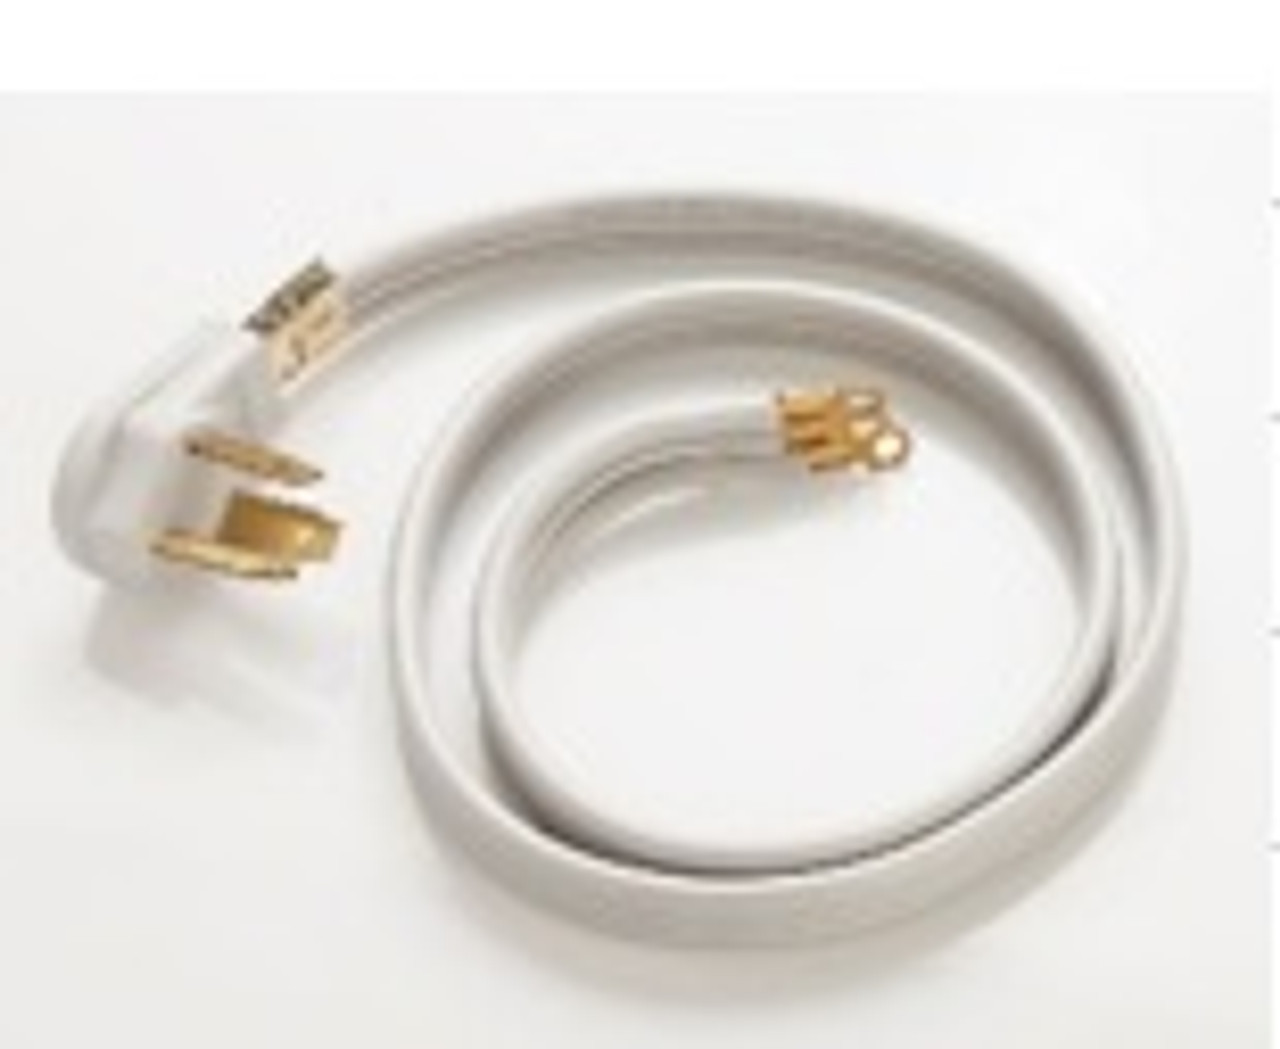 6' 3-WIRE DRYER CORD 30AMP